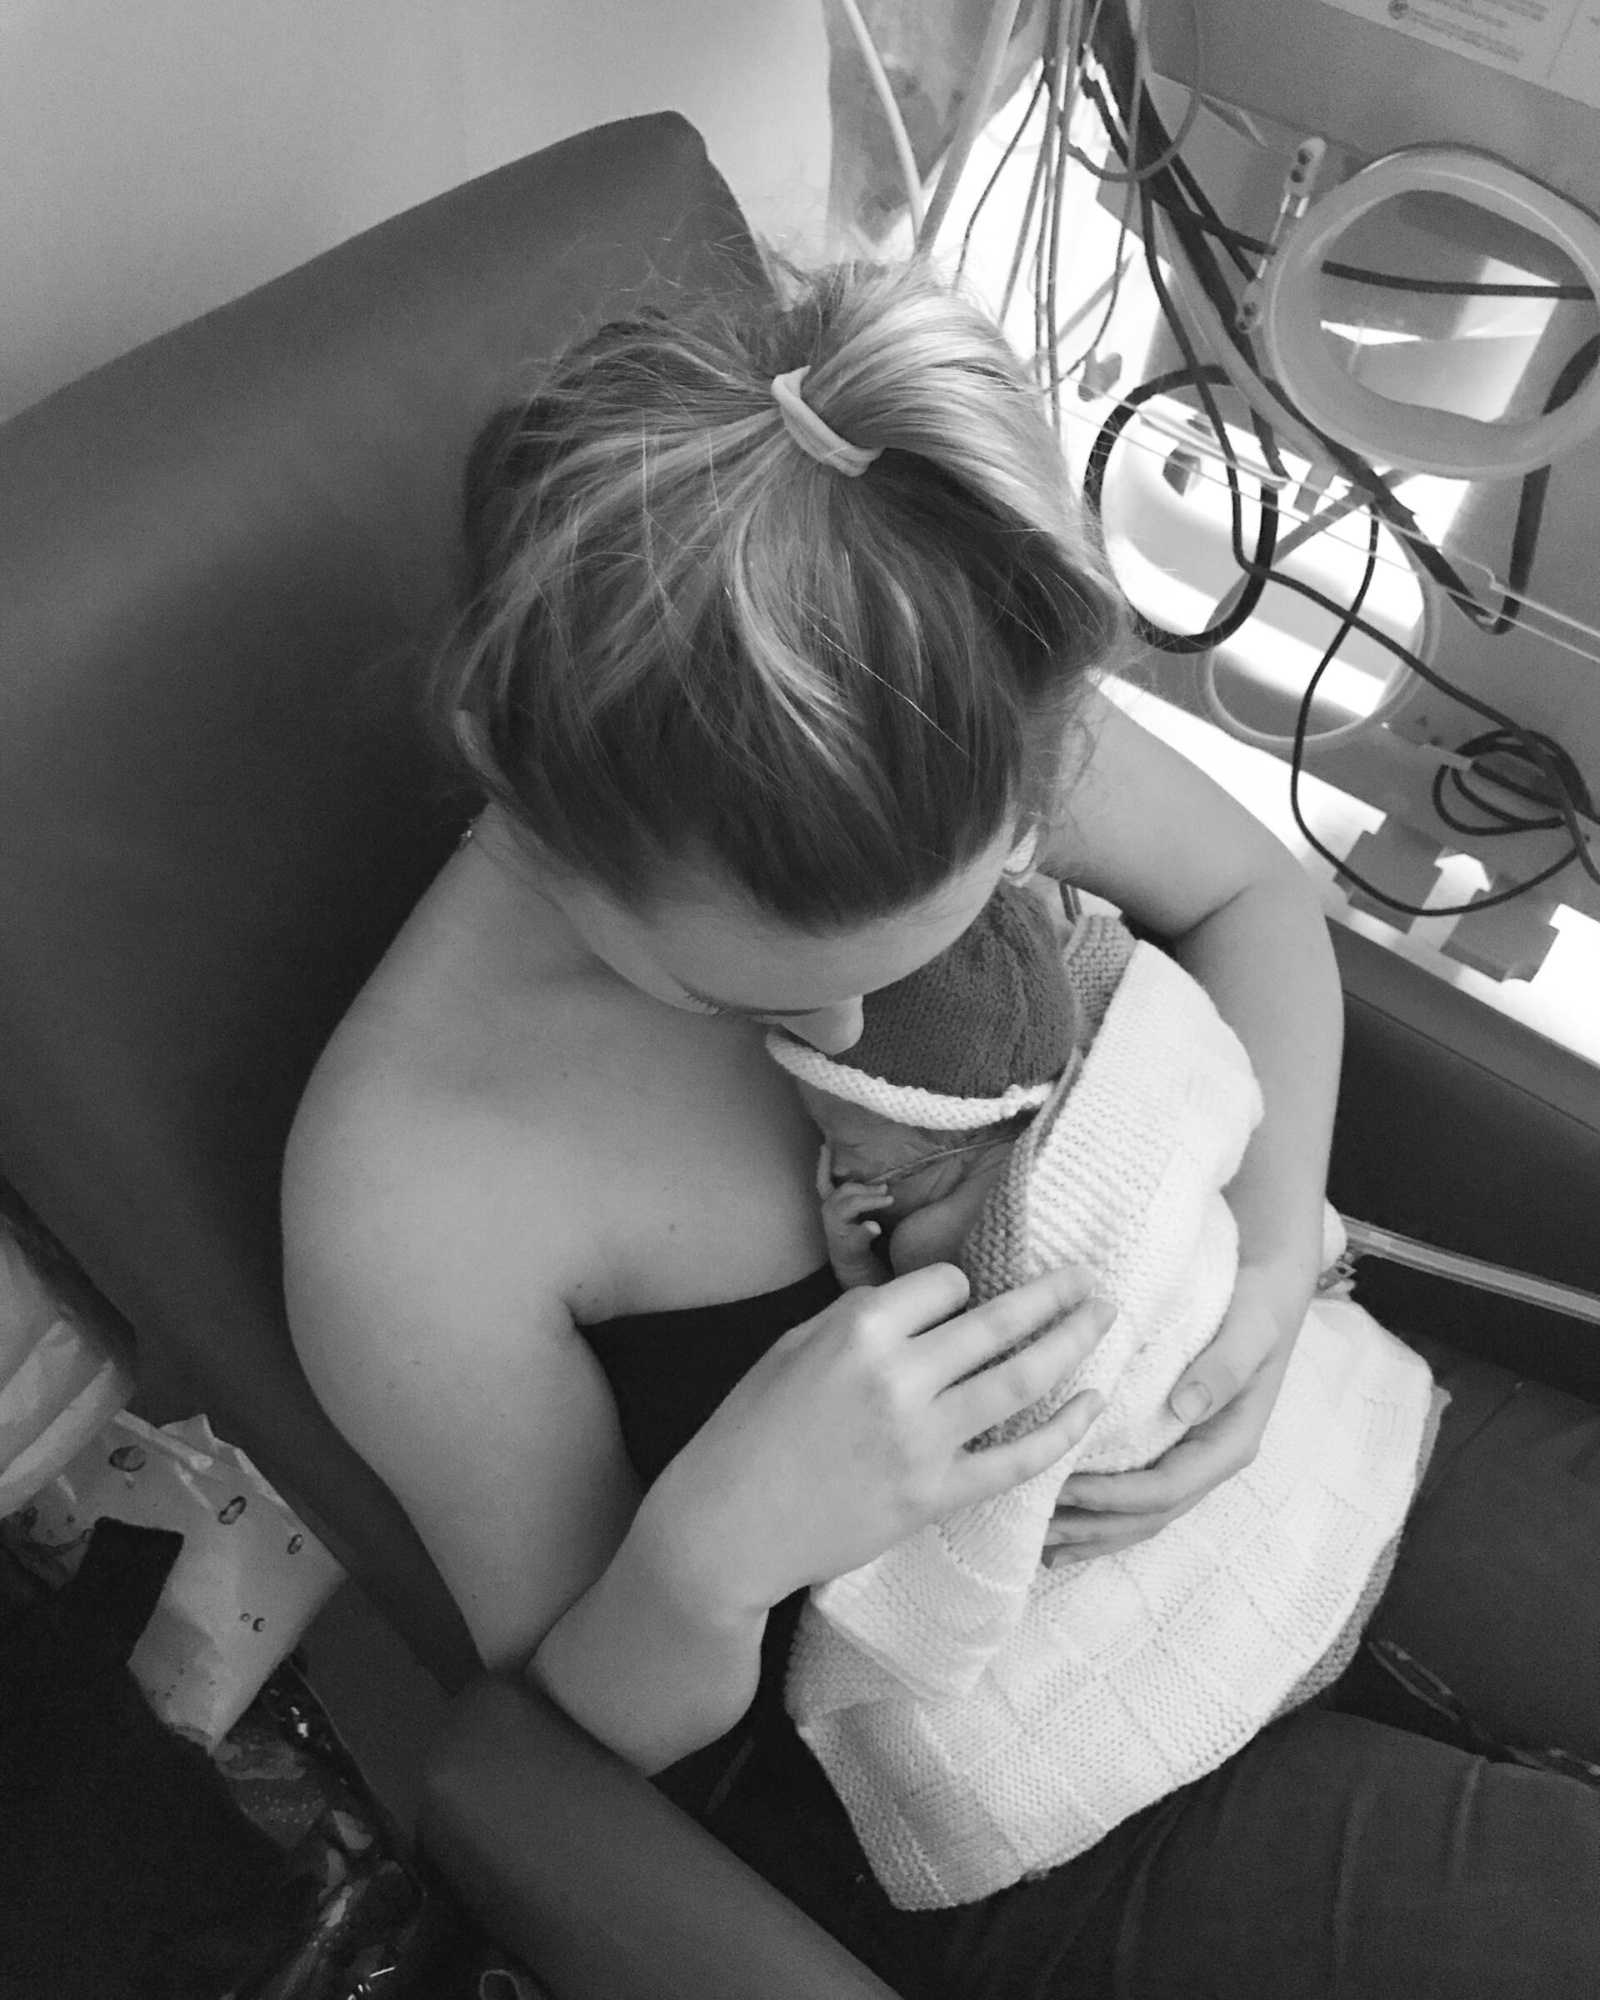 Mum of a Premature Baby Kangaroo Care